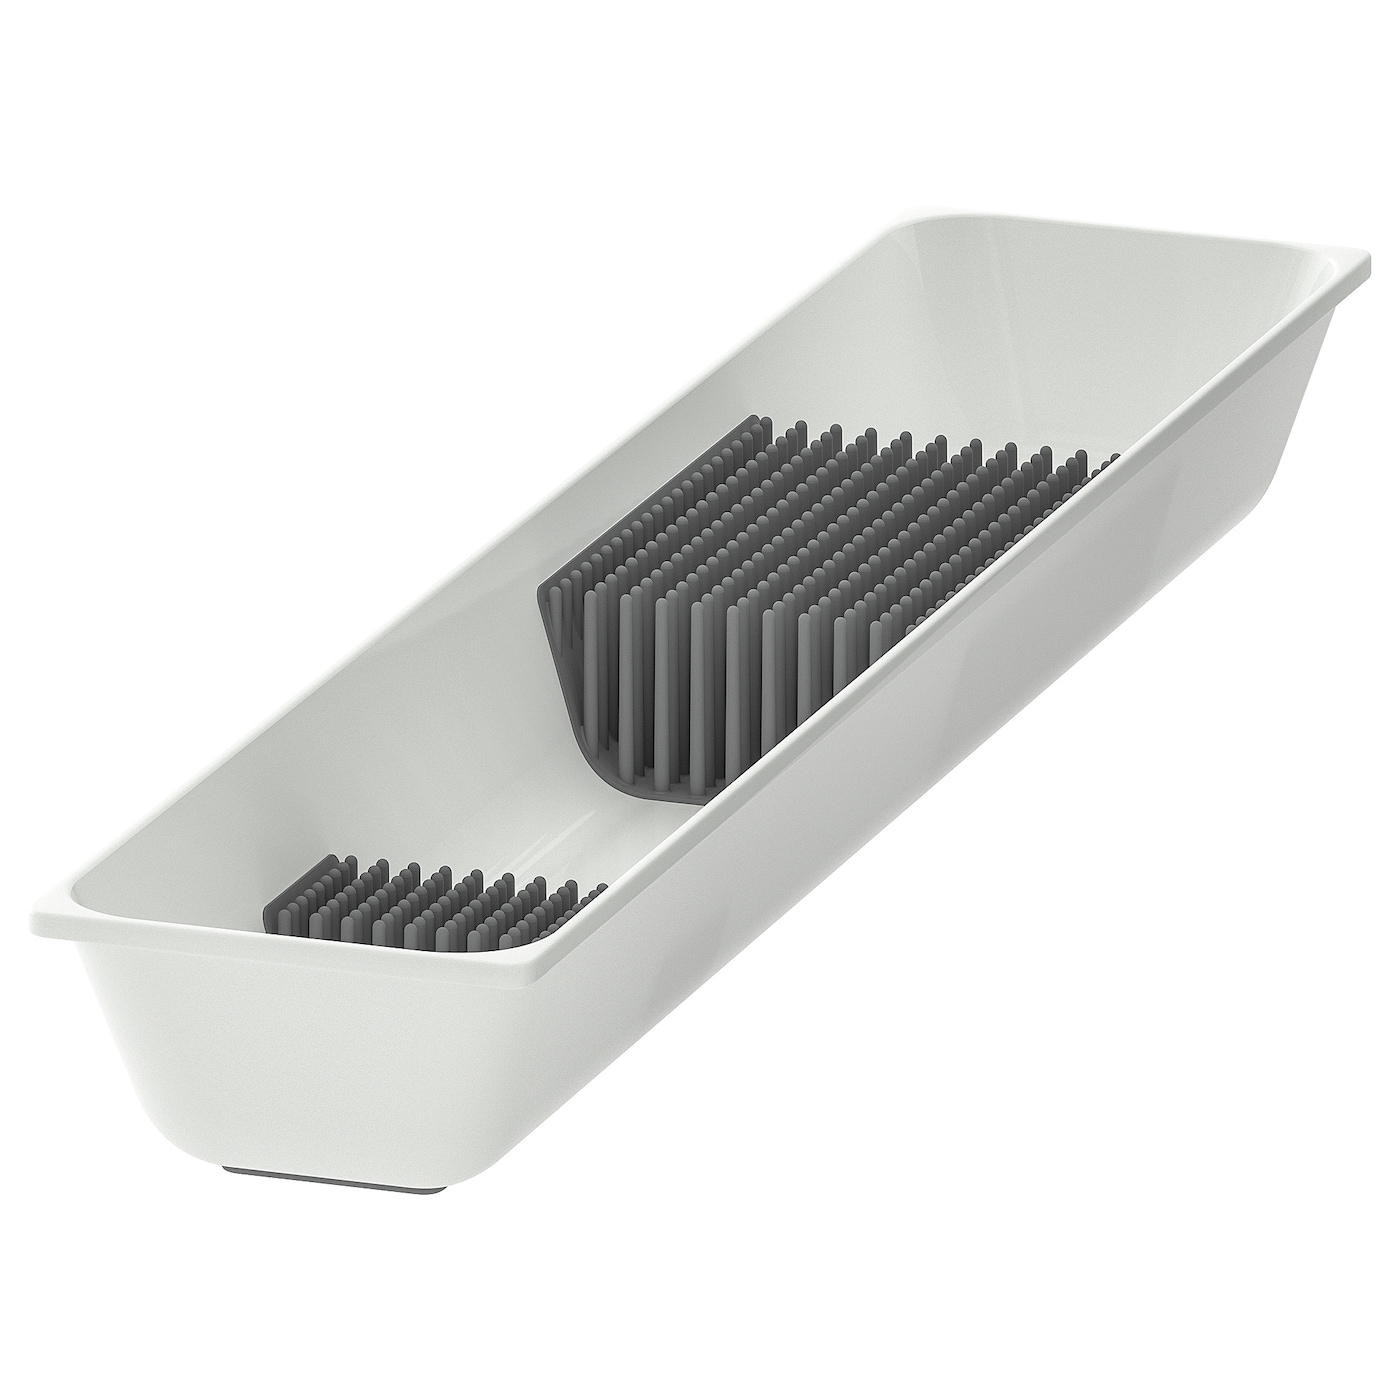 IKEA VARIERA knife tray Makes it easier to organise and find what you need in the drawer.